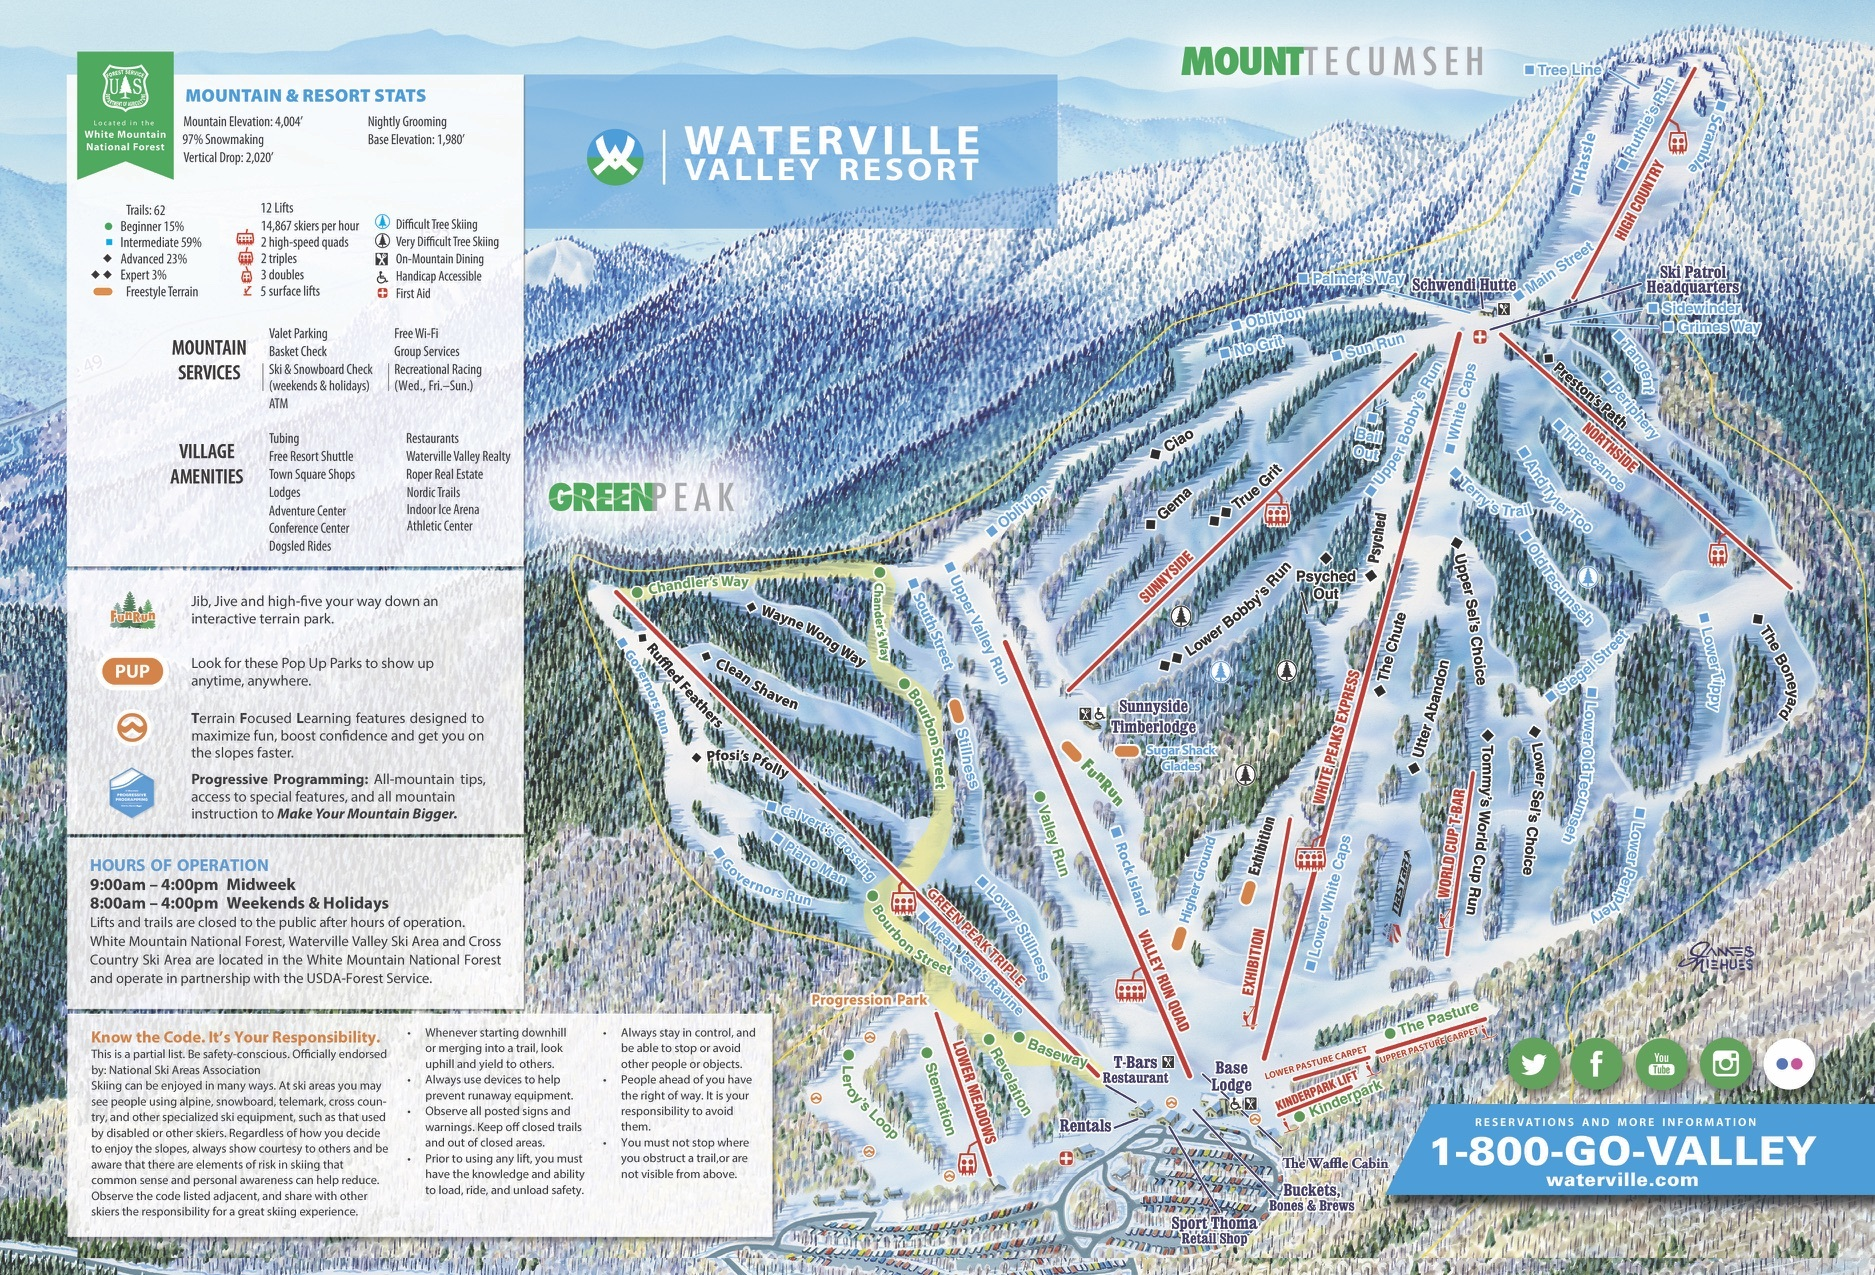 Waterville Valley Trail Map | OnTheSnow on new hampshire on a map, new hampshire scenic drives map, new hampshire canada map, new hampshire tourism map, new hampshire parks map, new hampshire speedway map, new england ski resorts, new hampshire golf map, new hampshire lakes map, gunstock ski area trail map, nh new hampshire mountains map, new mexico ski resorts, new hampshire vineyards map, new hampshire campgrounds map, new hampshire trail maps, new hampshire schools map, new hampshire fishing map, new hampshire town line map, new hampshire colonial era map, steamboat springs ski area map,